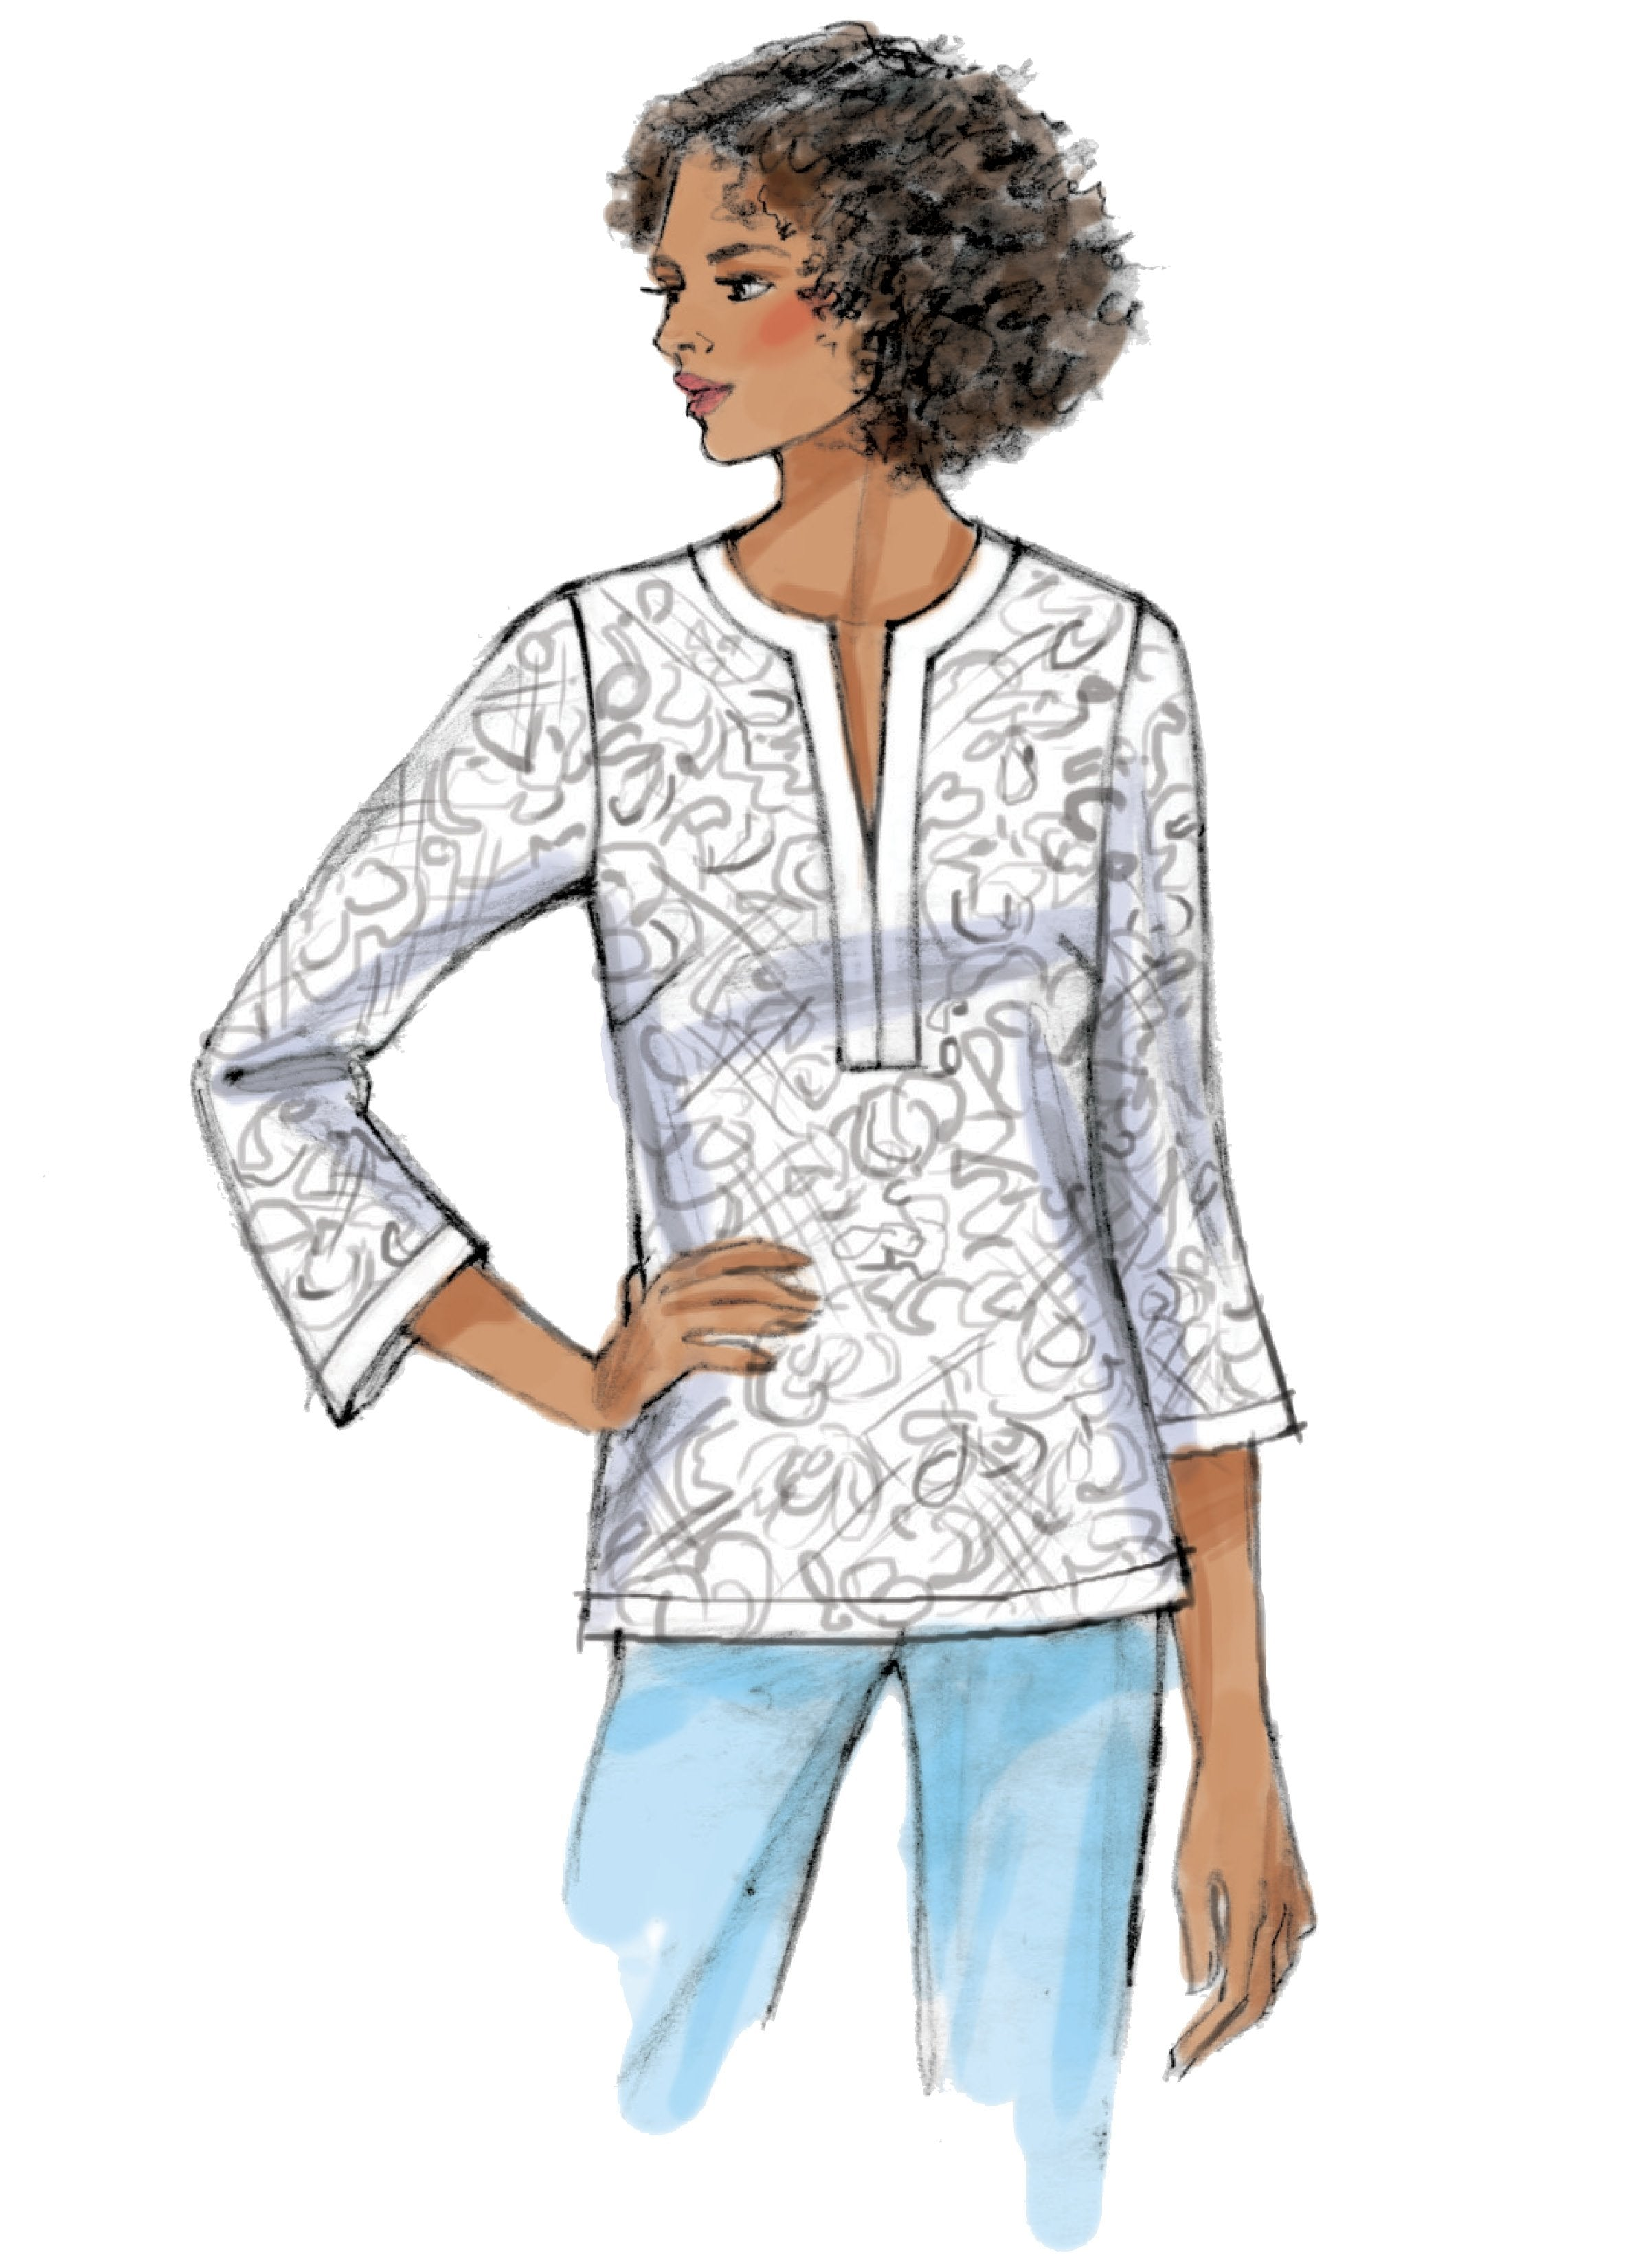 Butterick B6666 Top Sewing Pattern